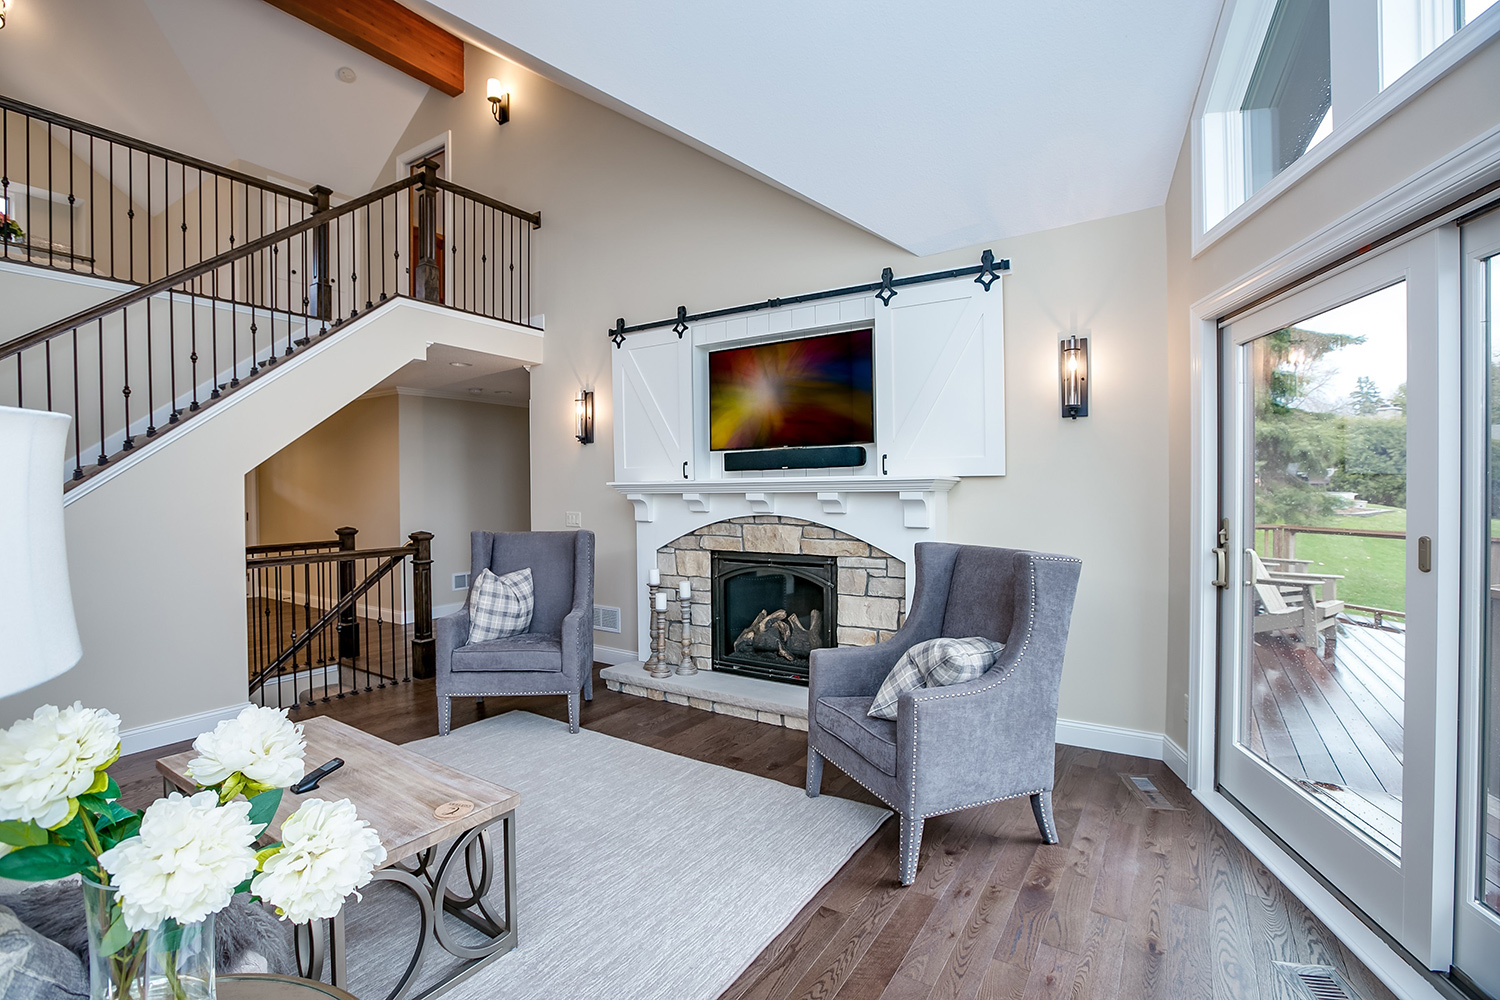 Photo of a renovated living room by XPAND, Inc